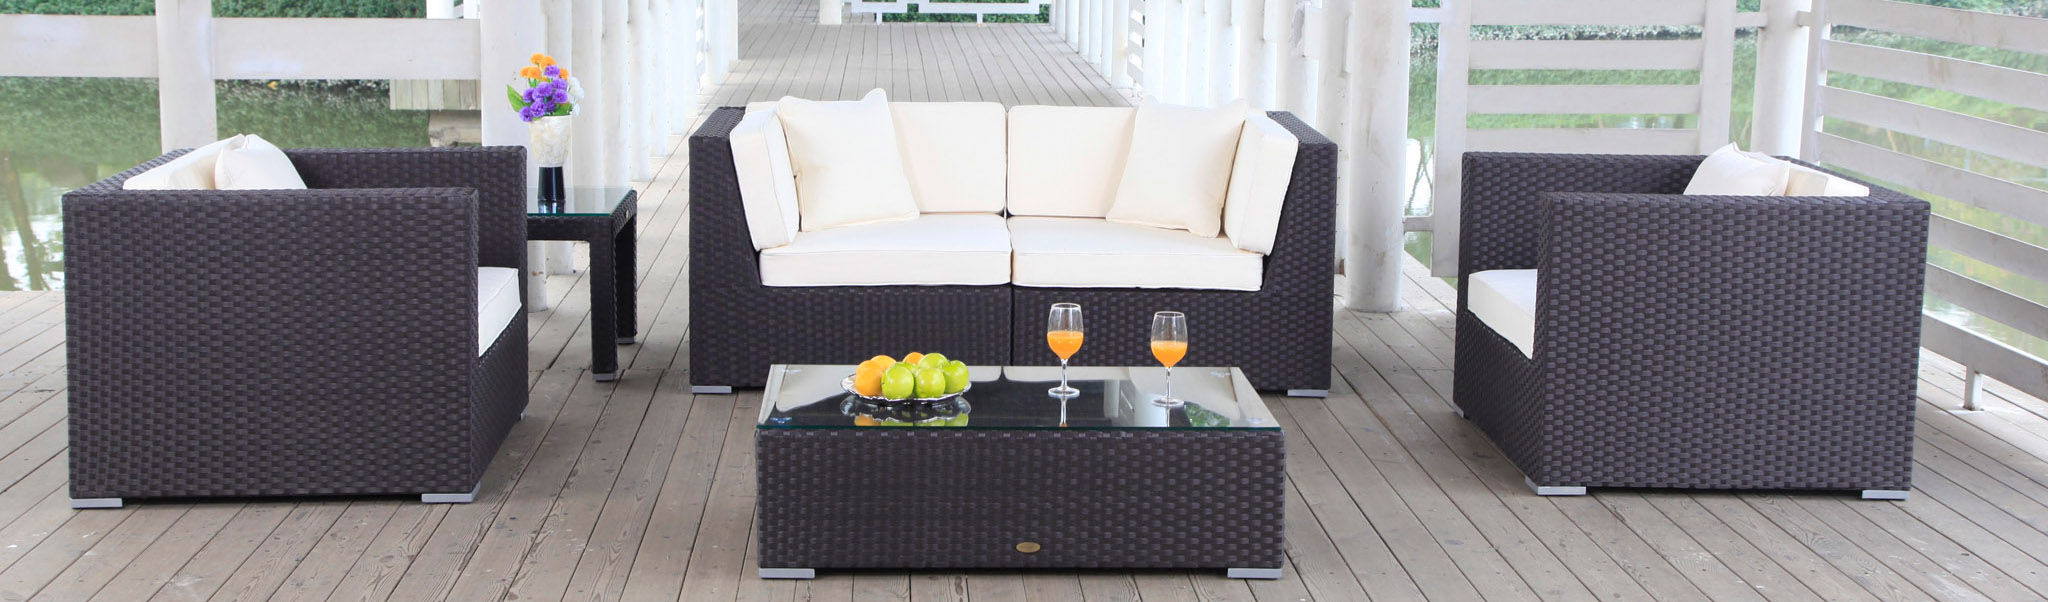 poly-rattan lounge furniture - garden furniture, Best garten ideen